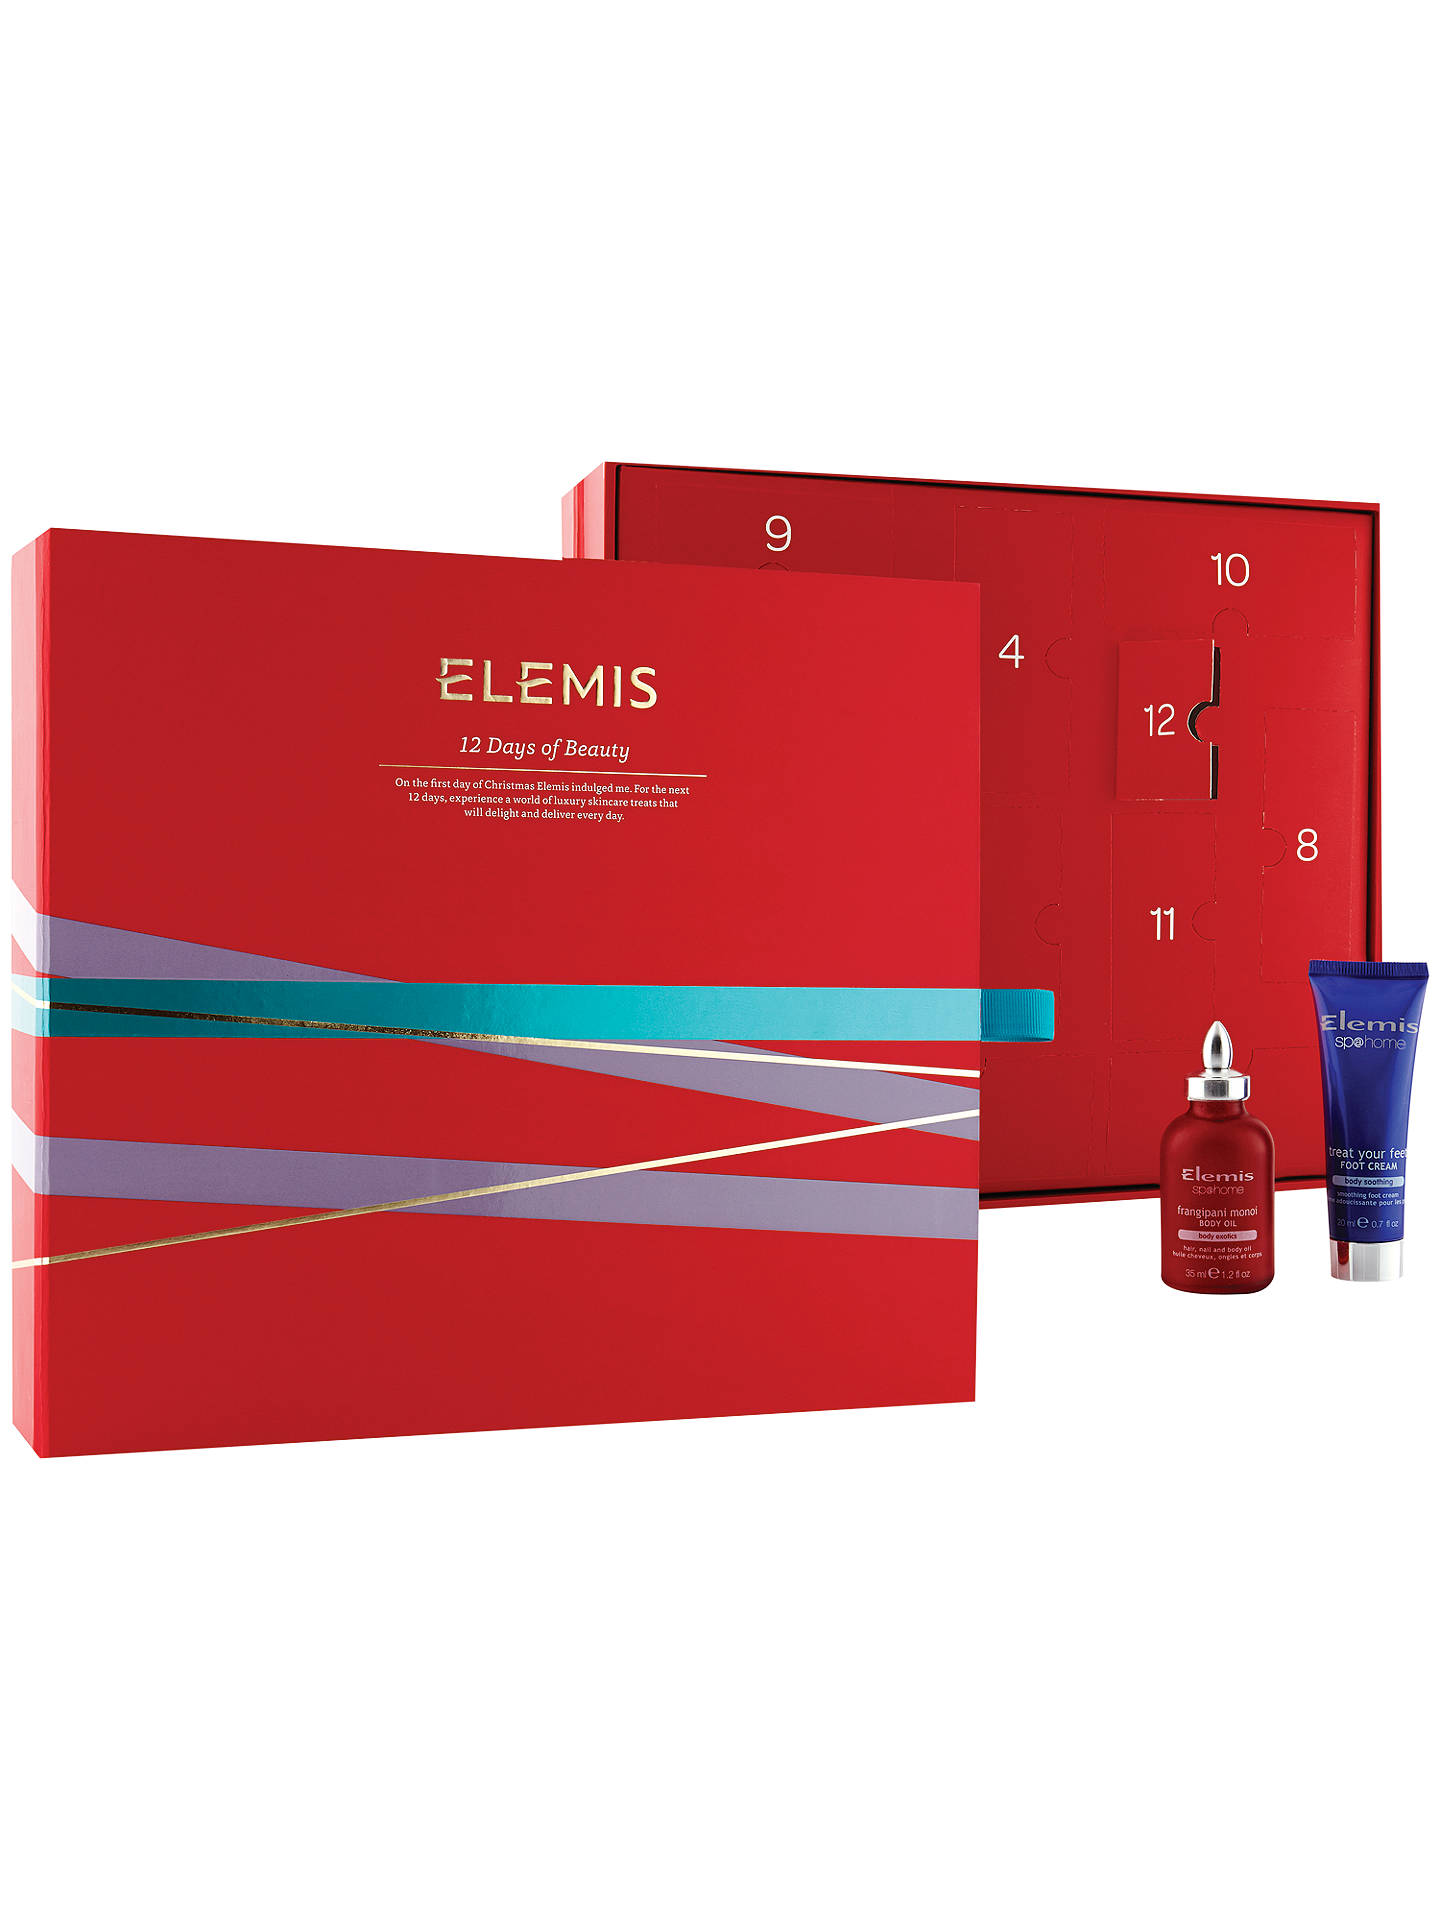 Buy Elemis 12 Days Of Beauty Gift Set Online at johnlewis.com